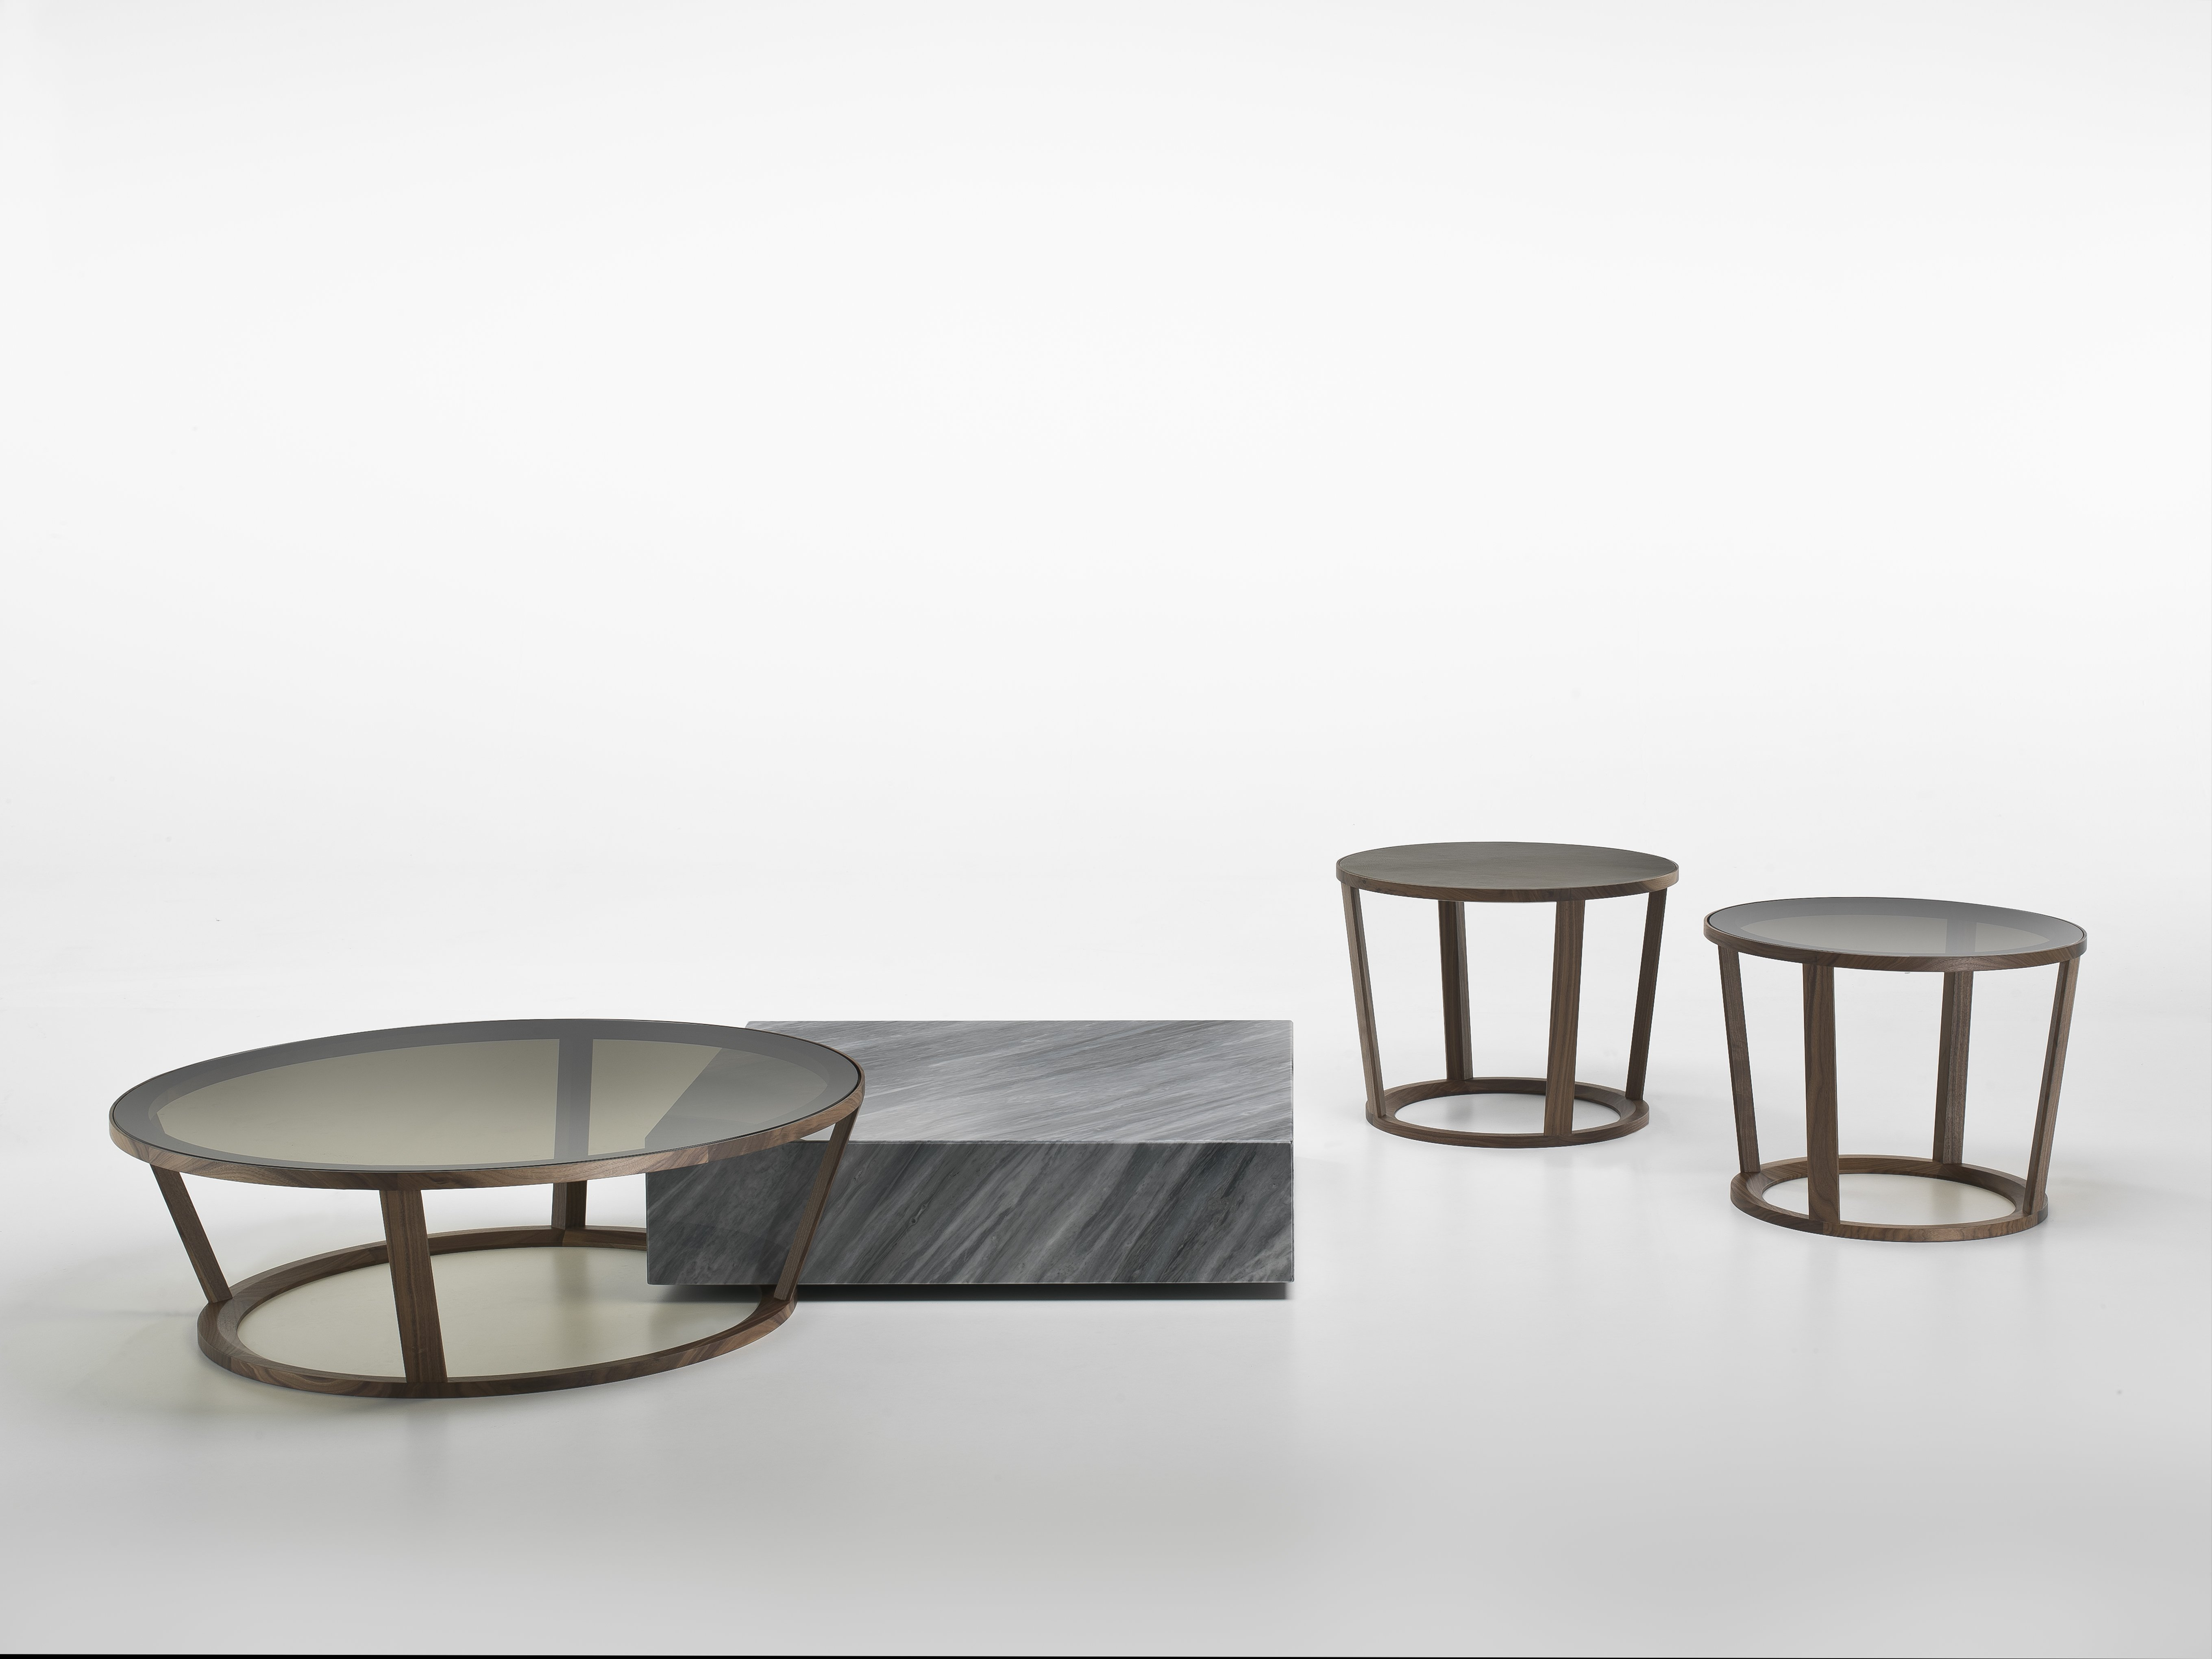 NIKY | Glass Coffee Table Niky Collection By I 4 Mariani Design Daniele Lo  Scalzo Moscheri